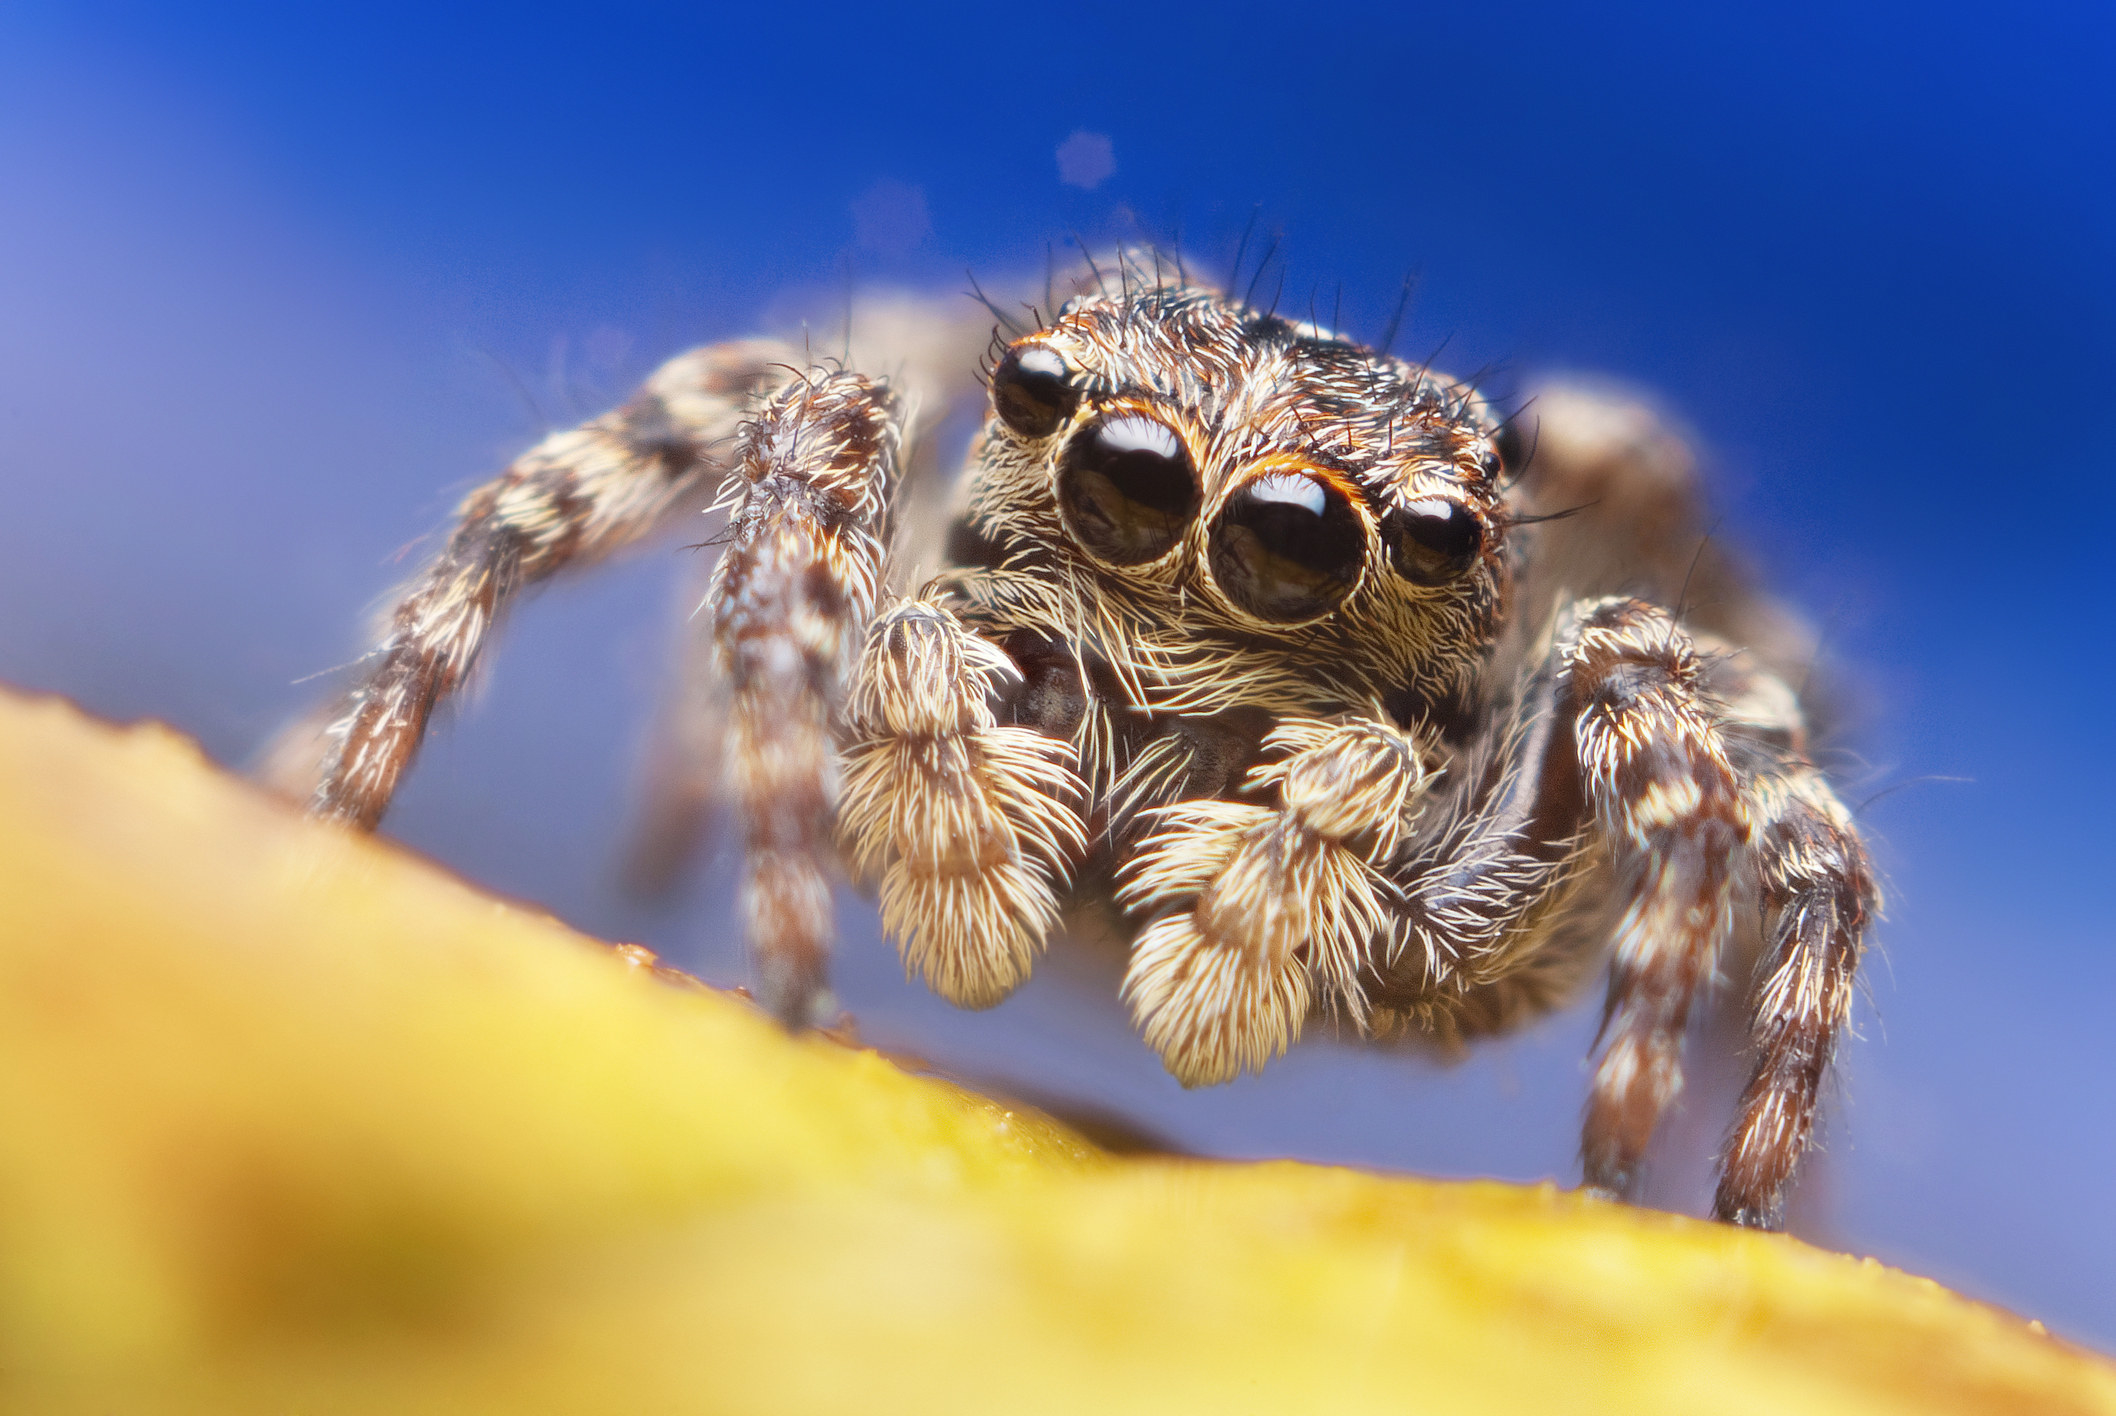 Jumping spider on bright background in nature